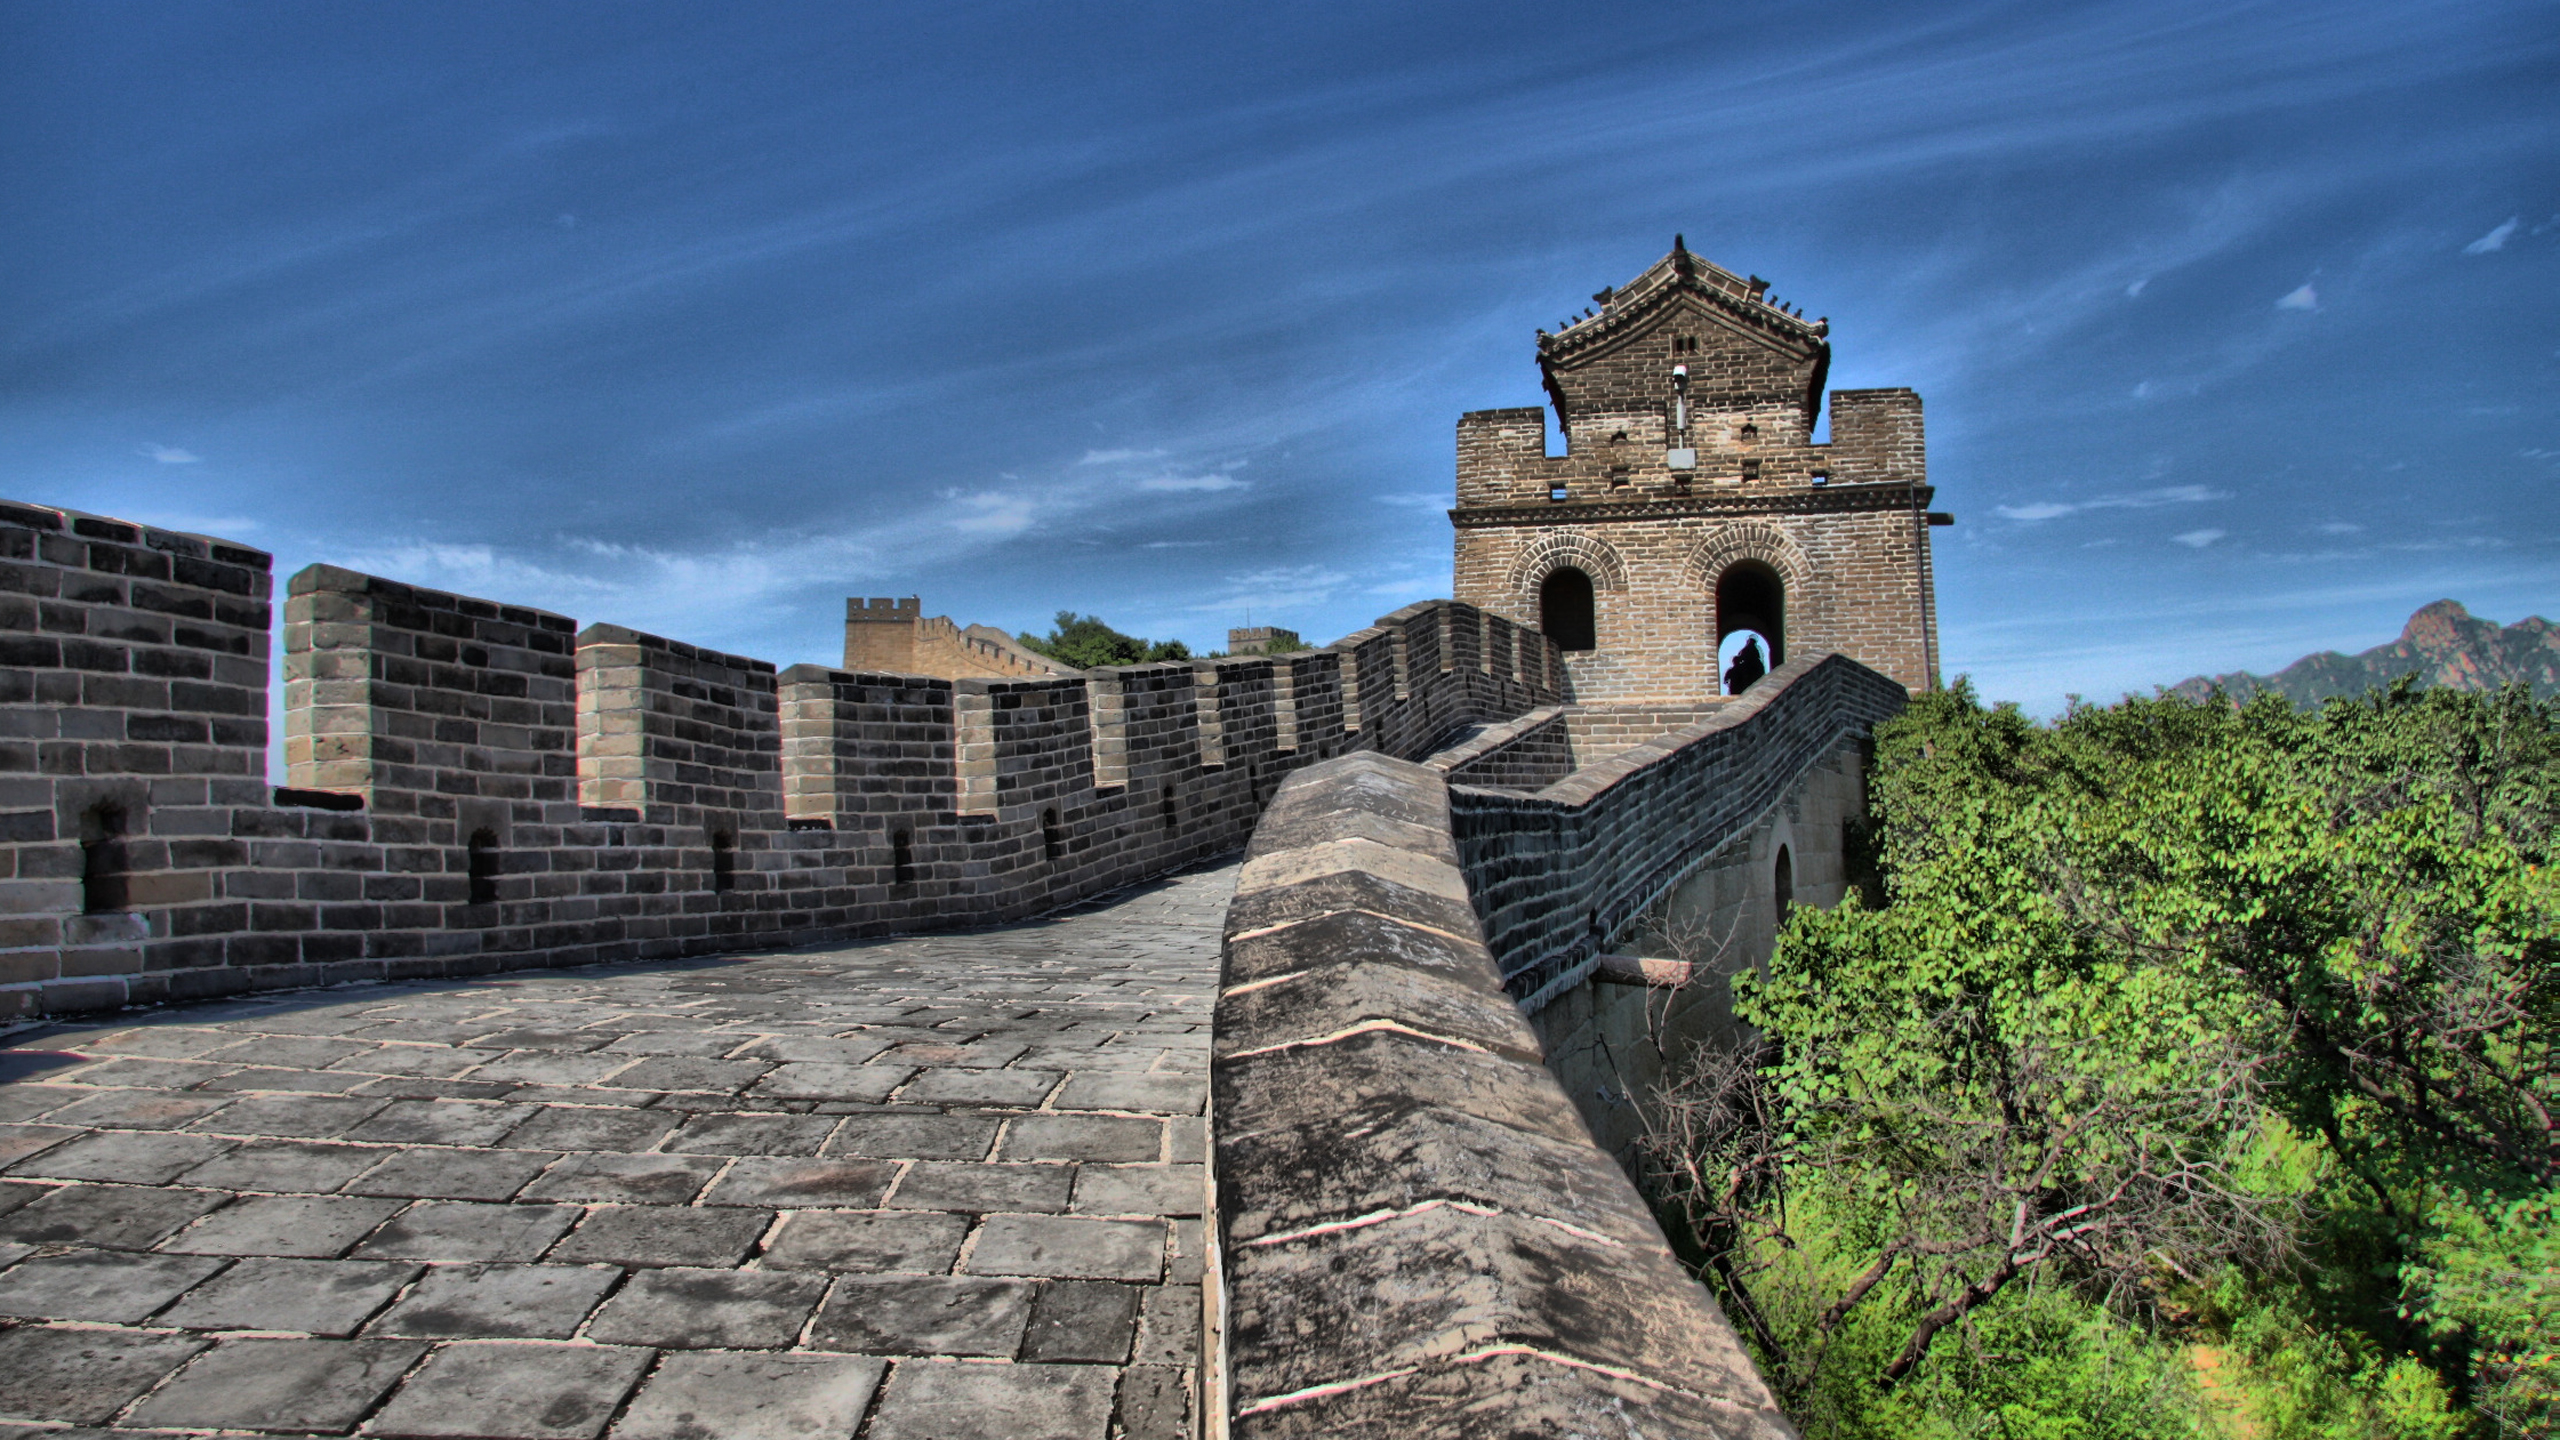 Wall of China Fortification Wallpaper   Travel HD Wallpapers 2560x1440